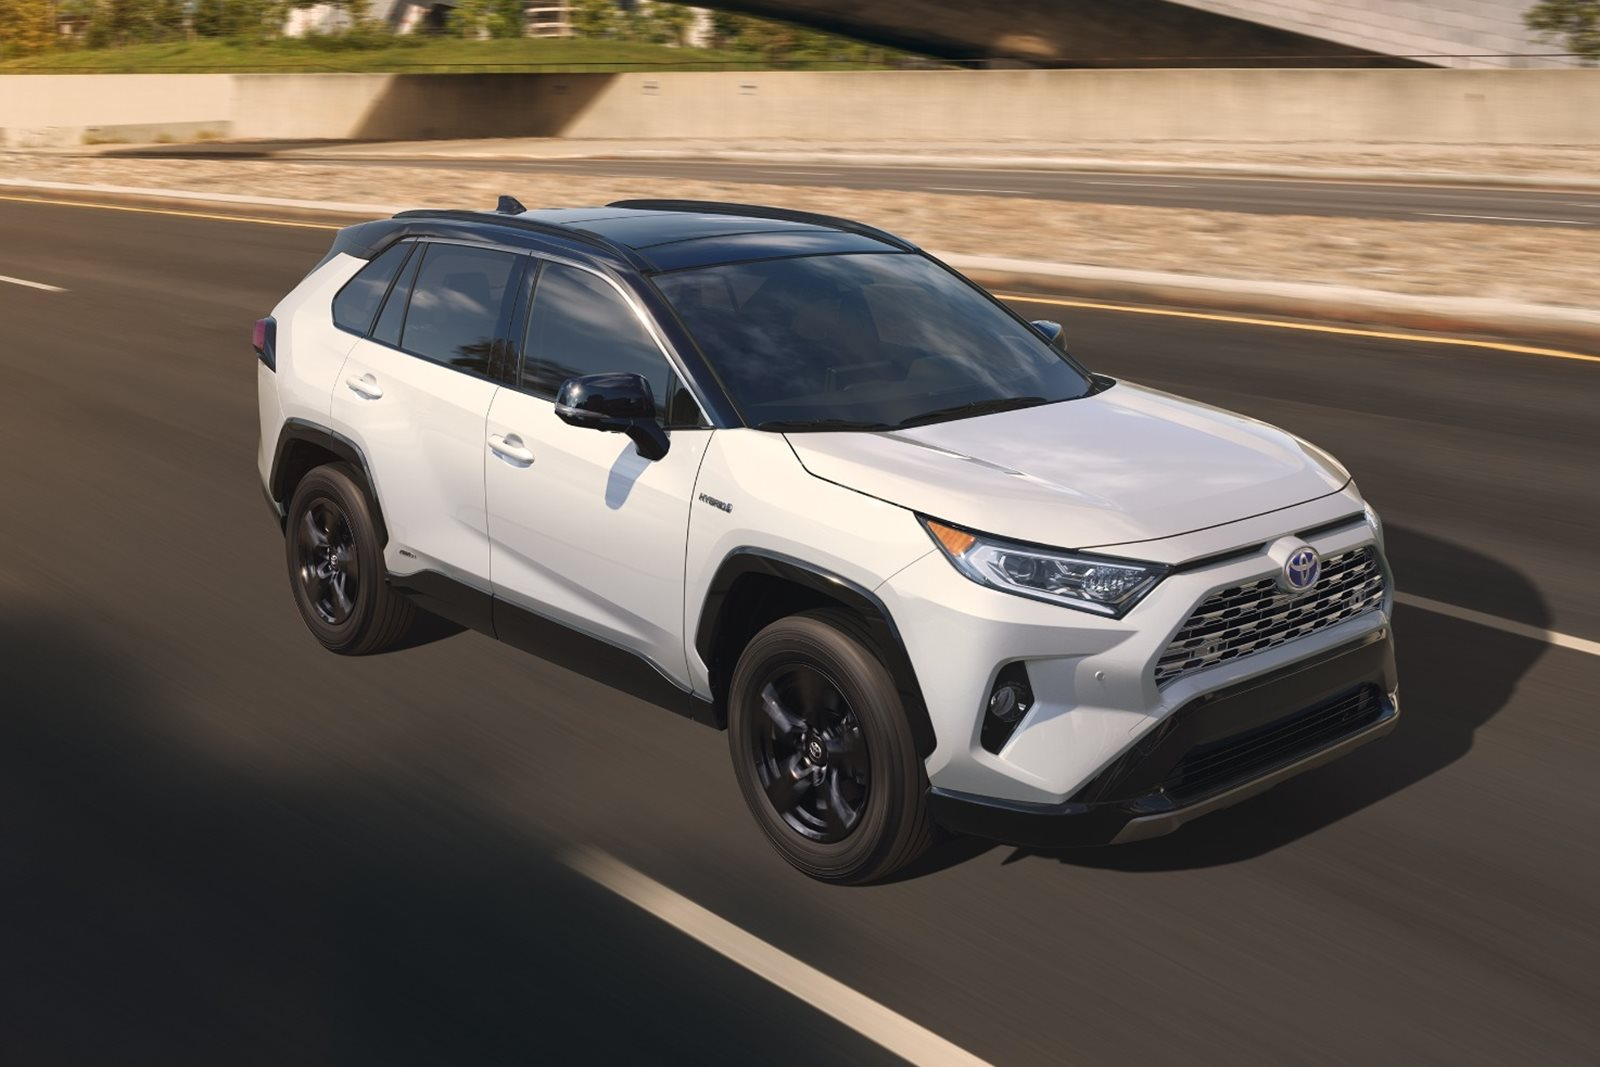 2019 toyota rav4 first look review appealing to the masses carbuzz. Black Bedroom Furniture Sets. Home Design Ideas